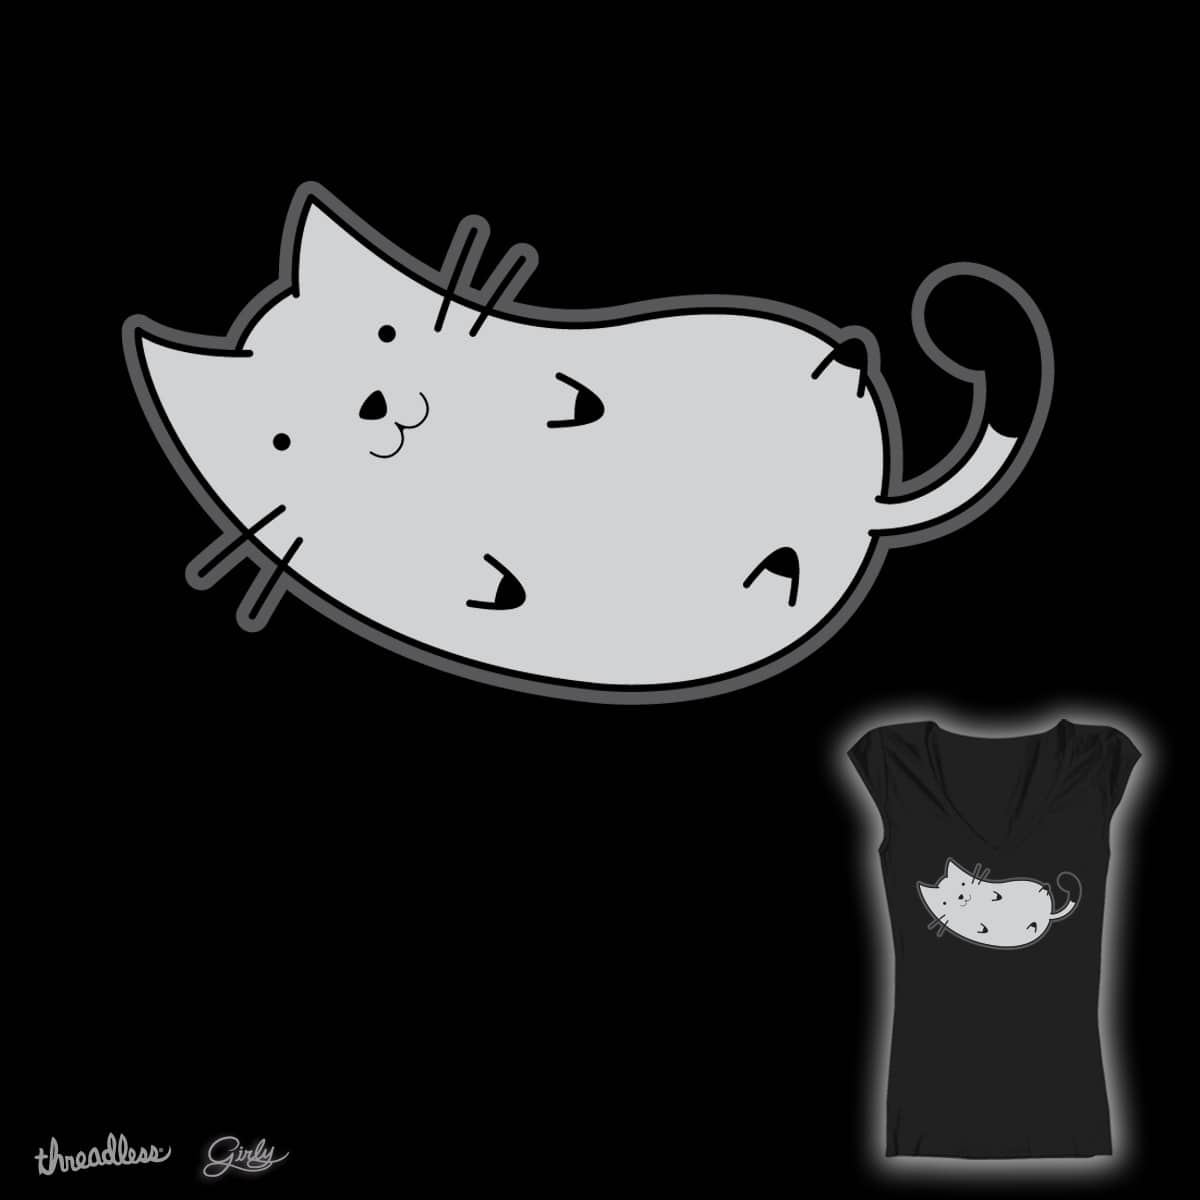 Cuddle Cat by Taylovision on Threadless